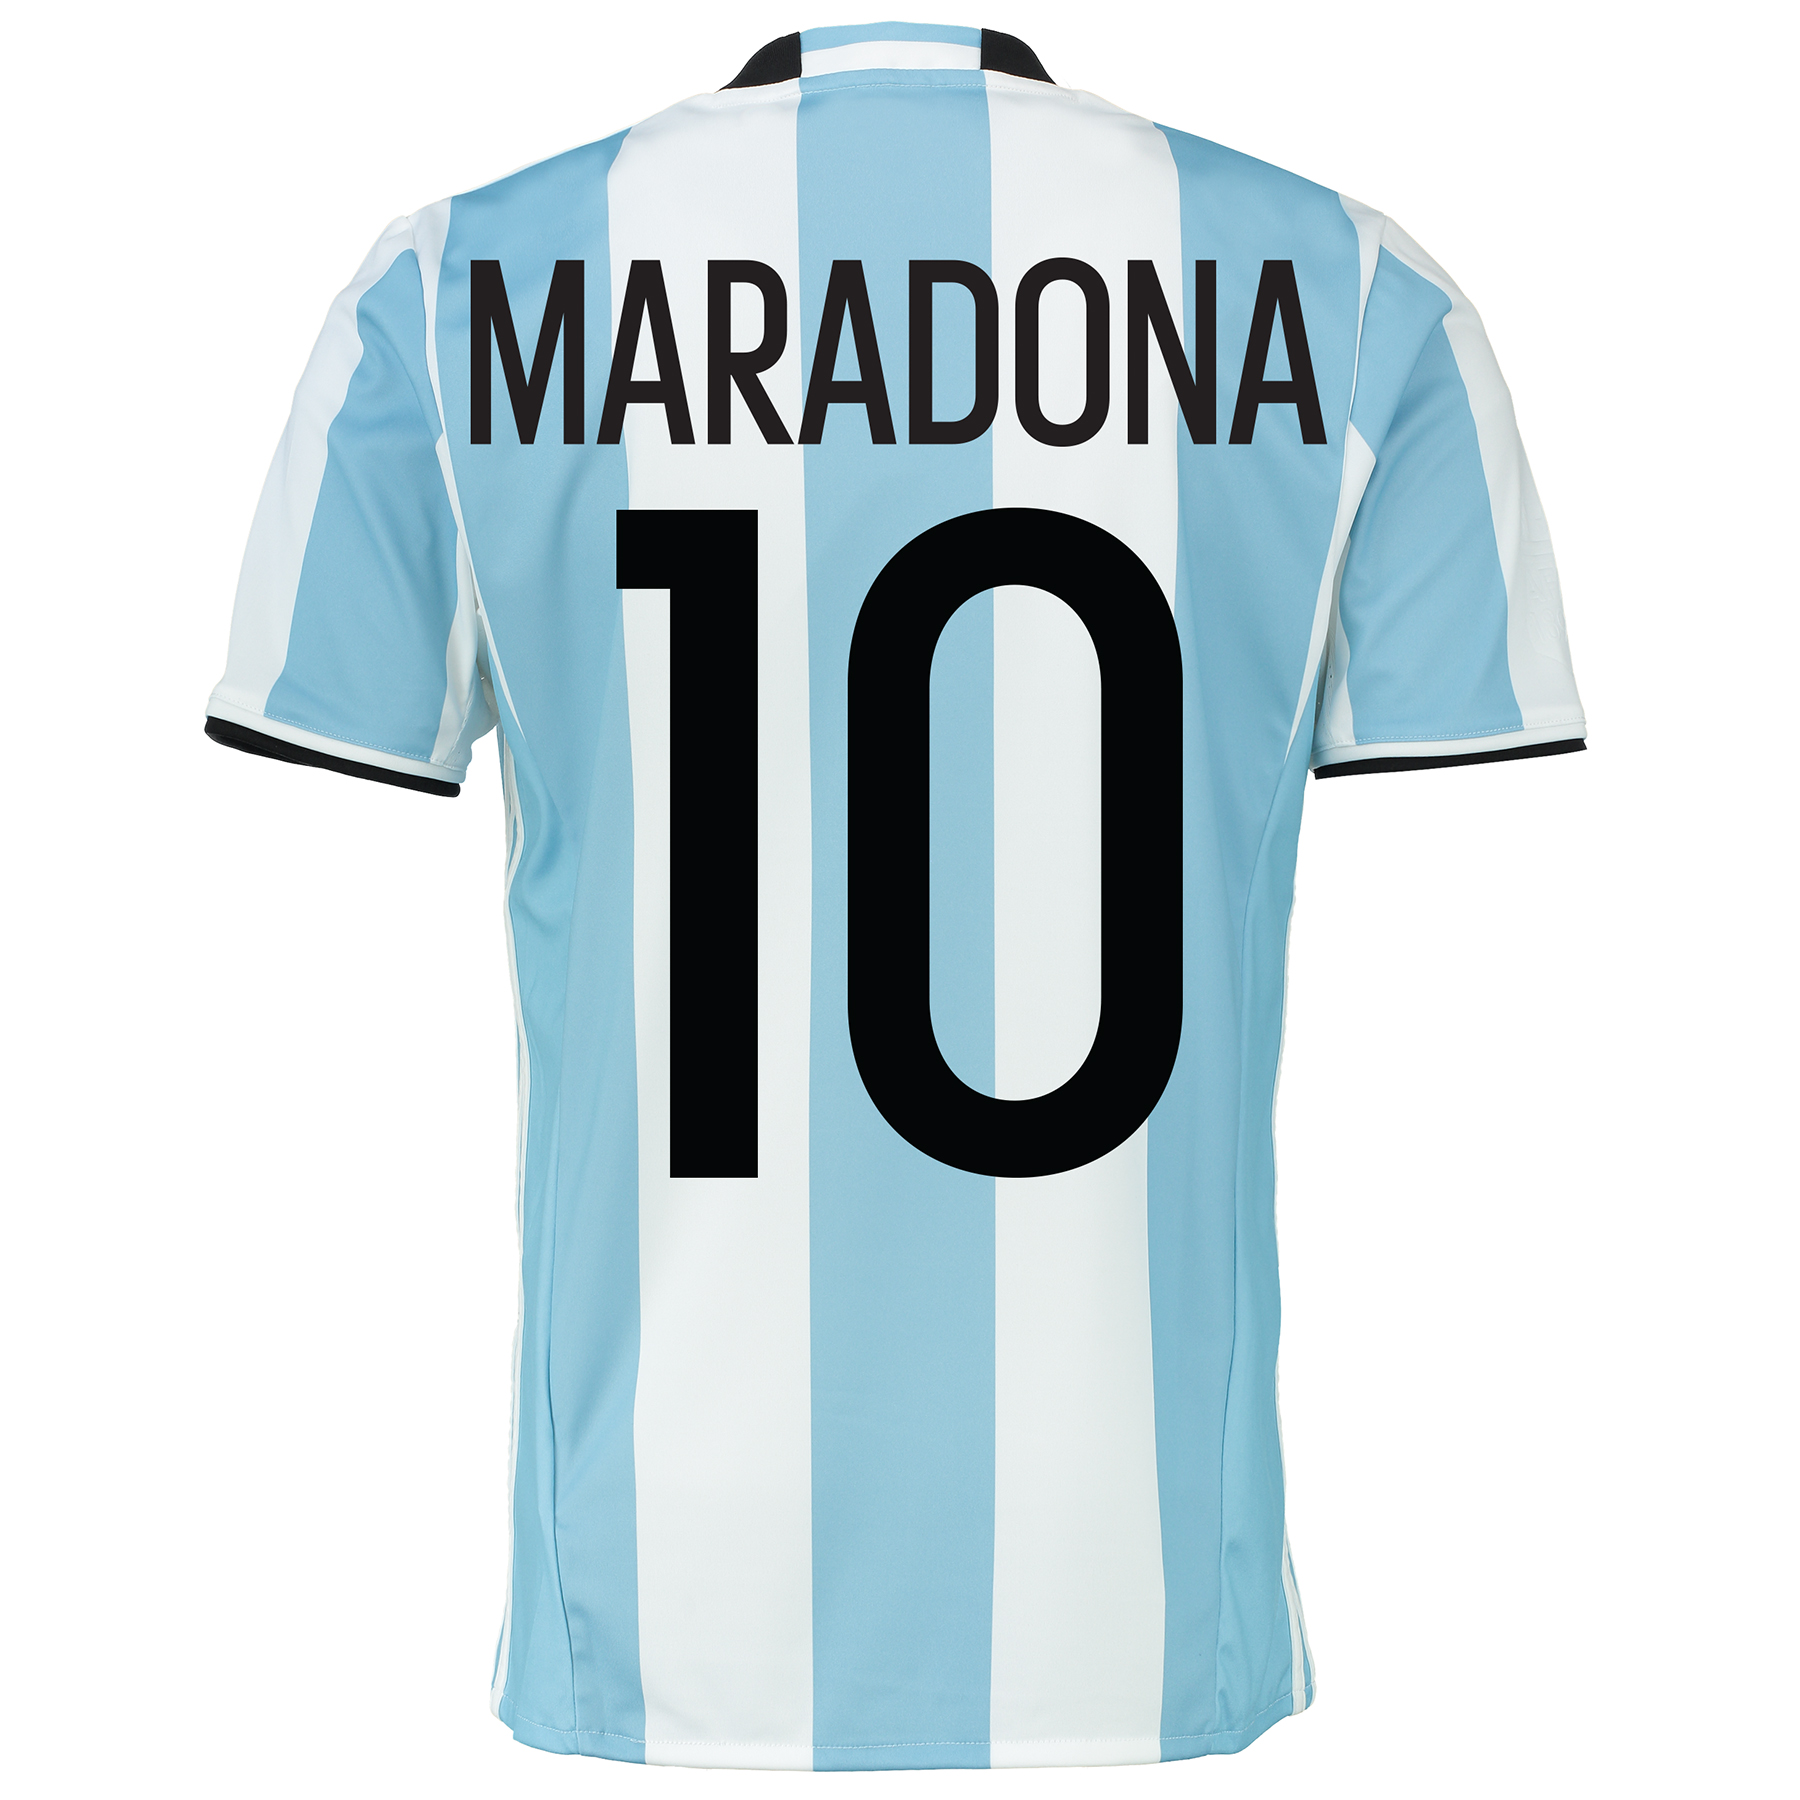 Argentina Home Shirt 2016 Lt Blue with Maradona 10 printing